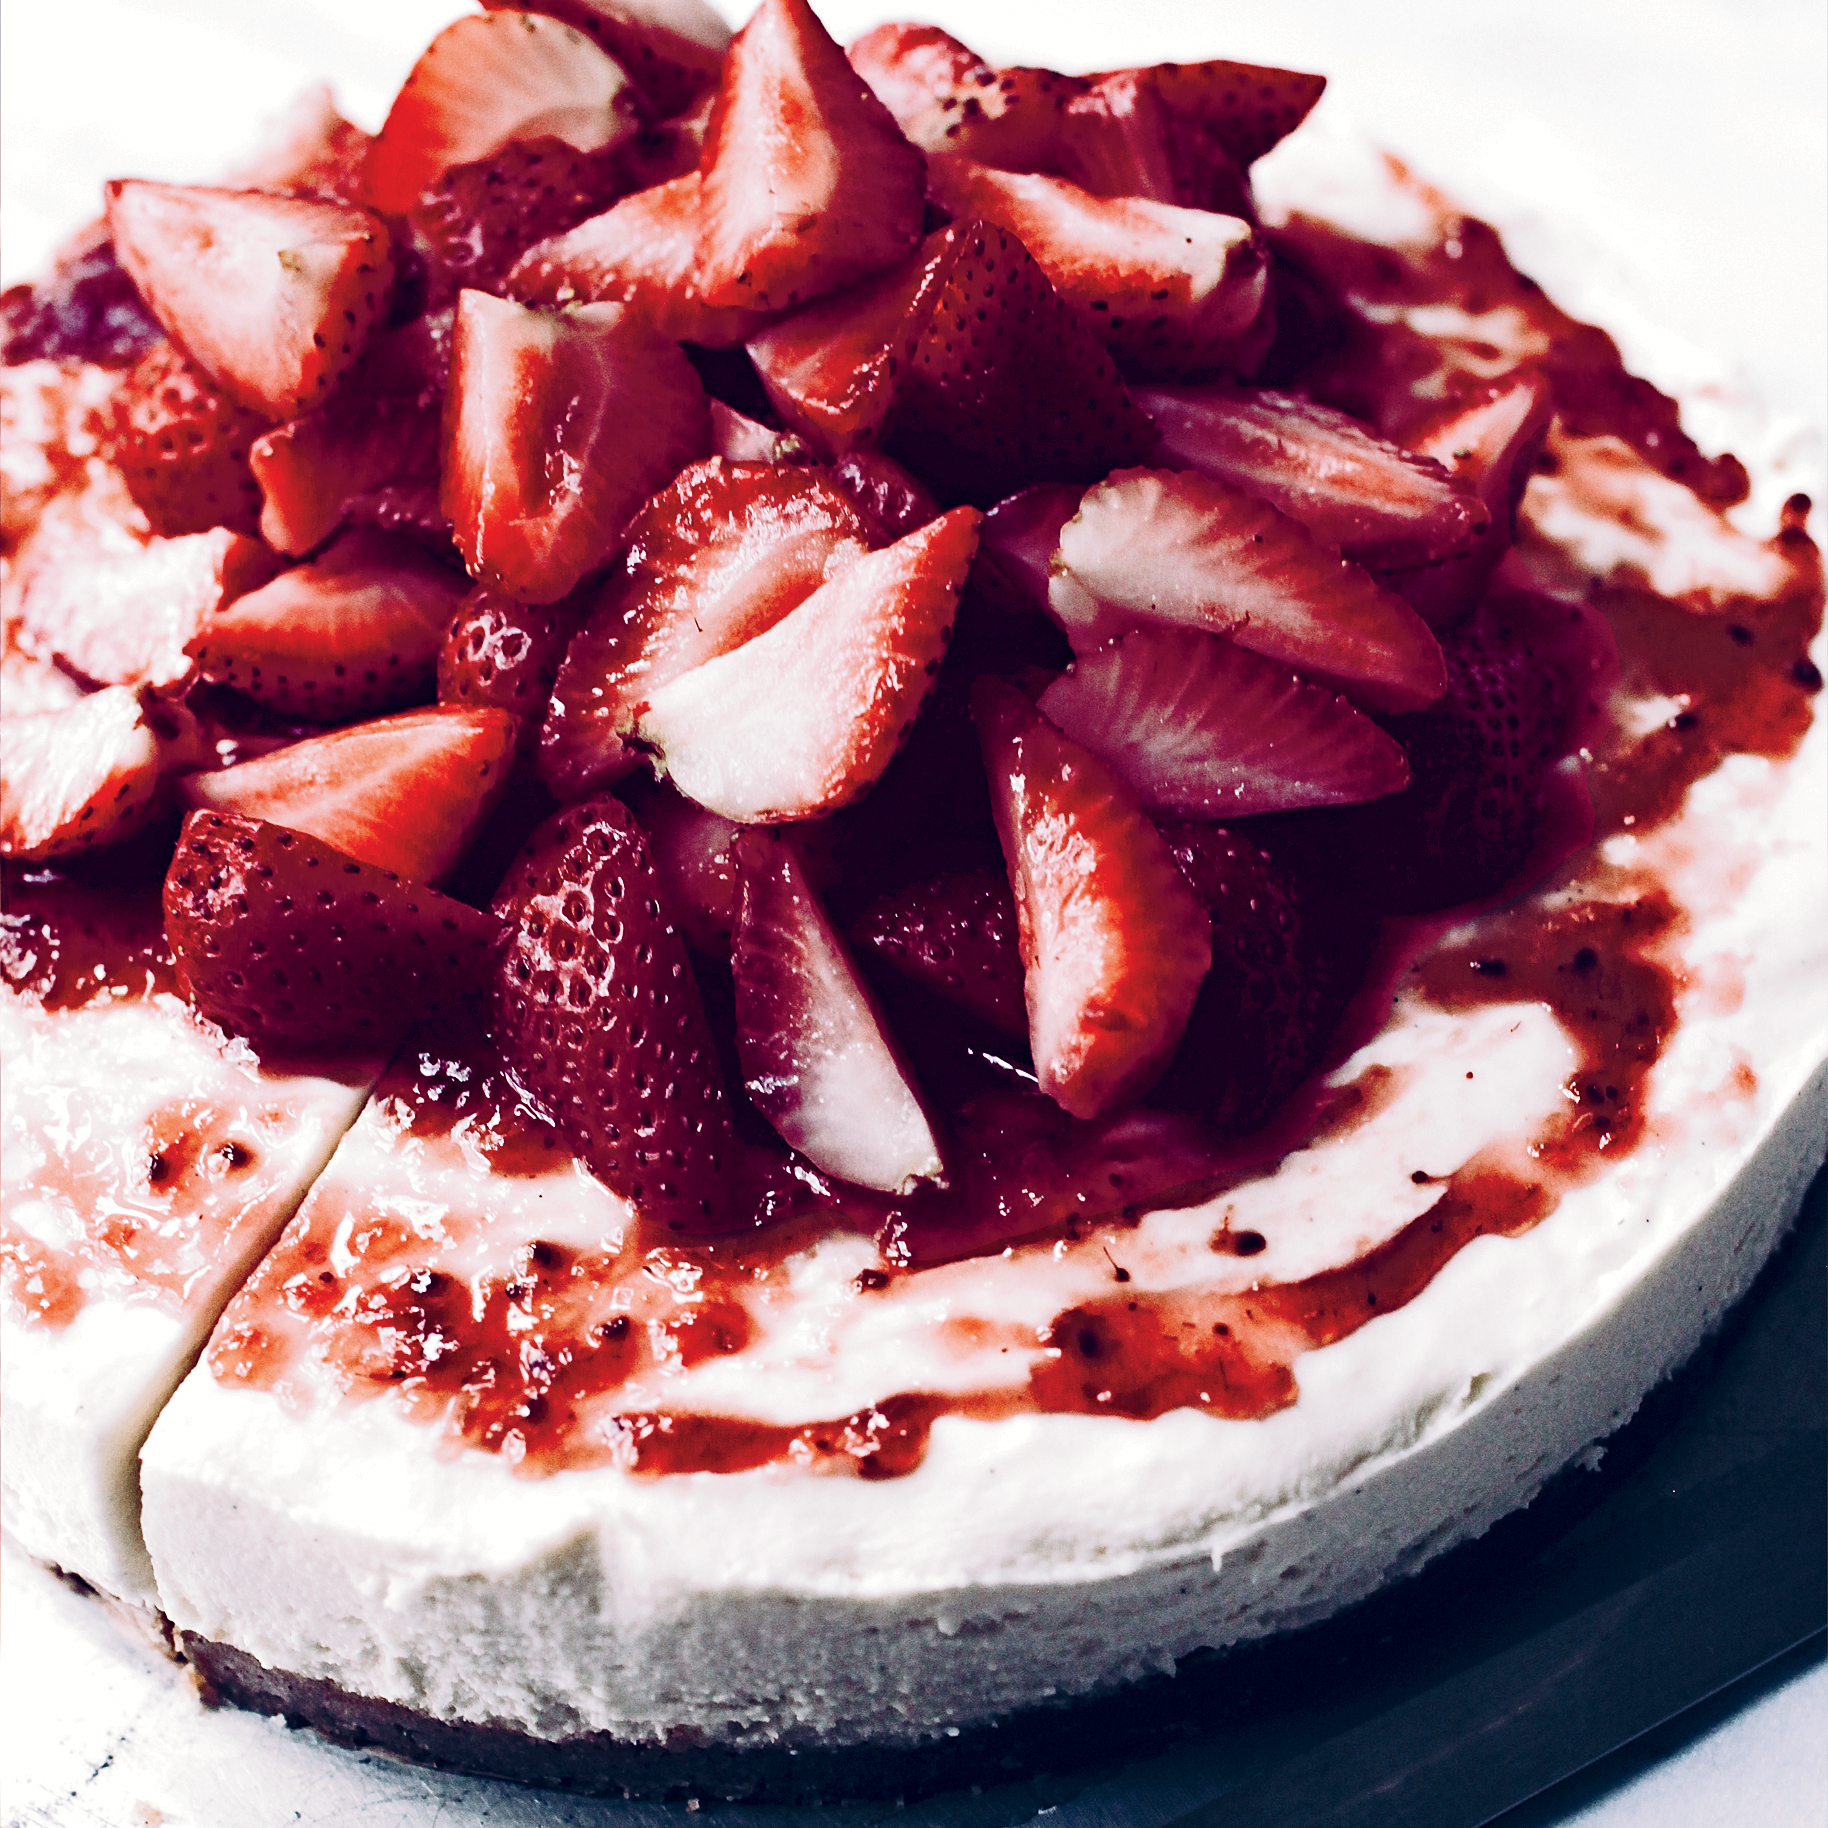 No Bake White Chocolate Cheesecake With Strawberries Recipe Kamran Siddiqi Food Wine